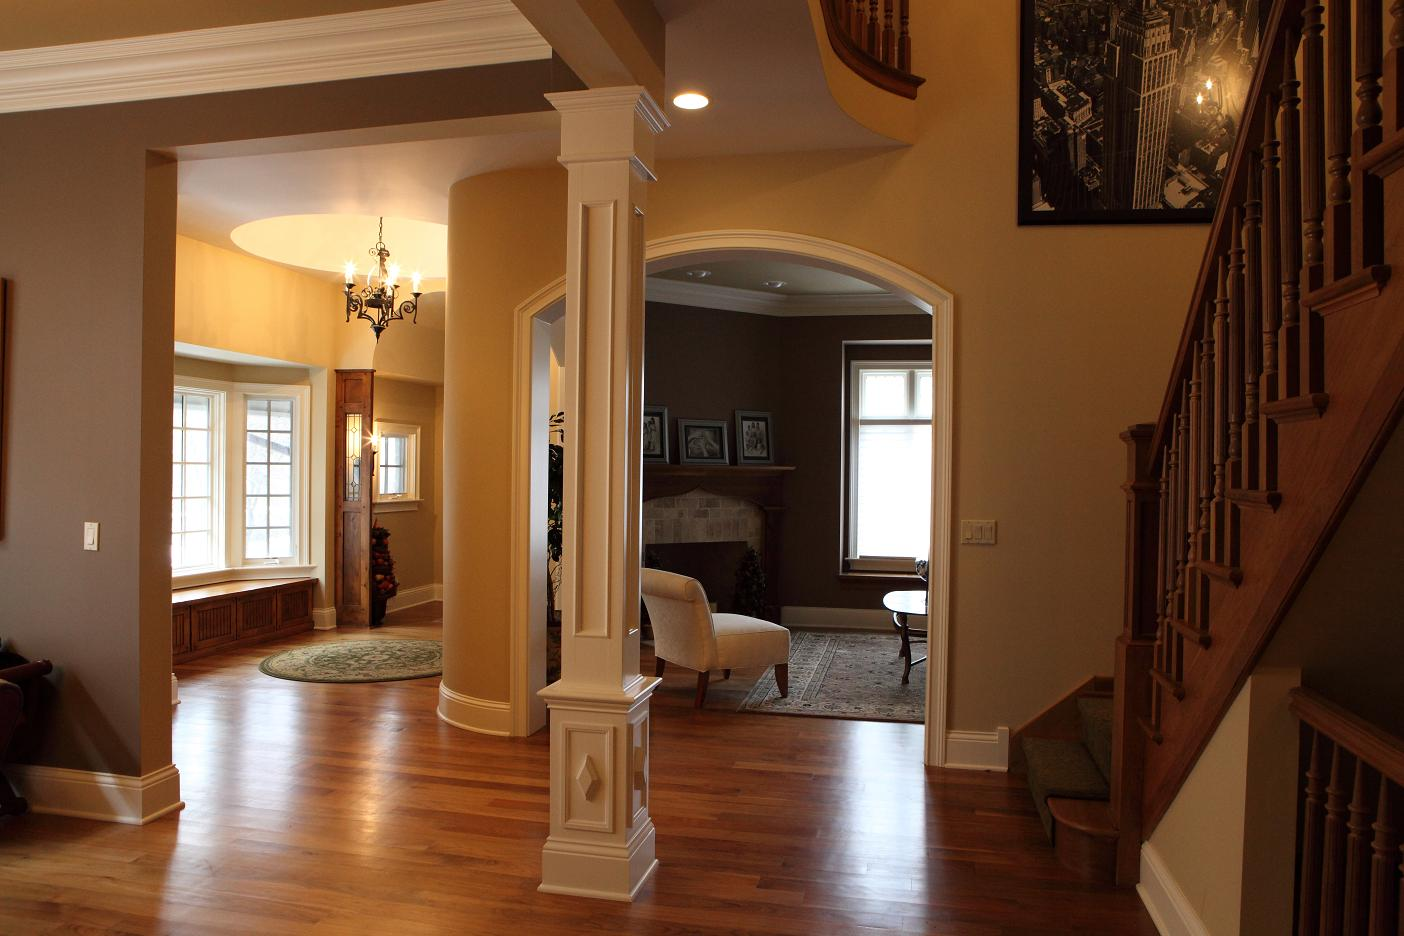 Interior Columns battaglia homes - the very best in interior trim (part ii